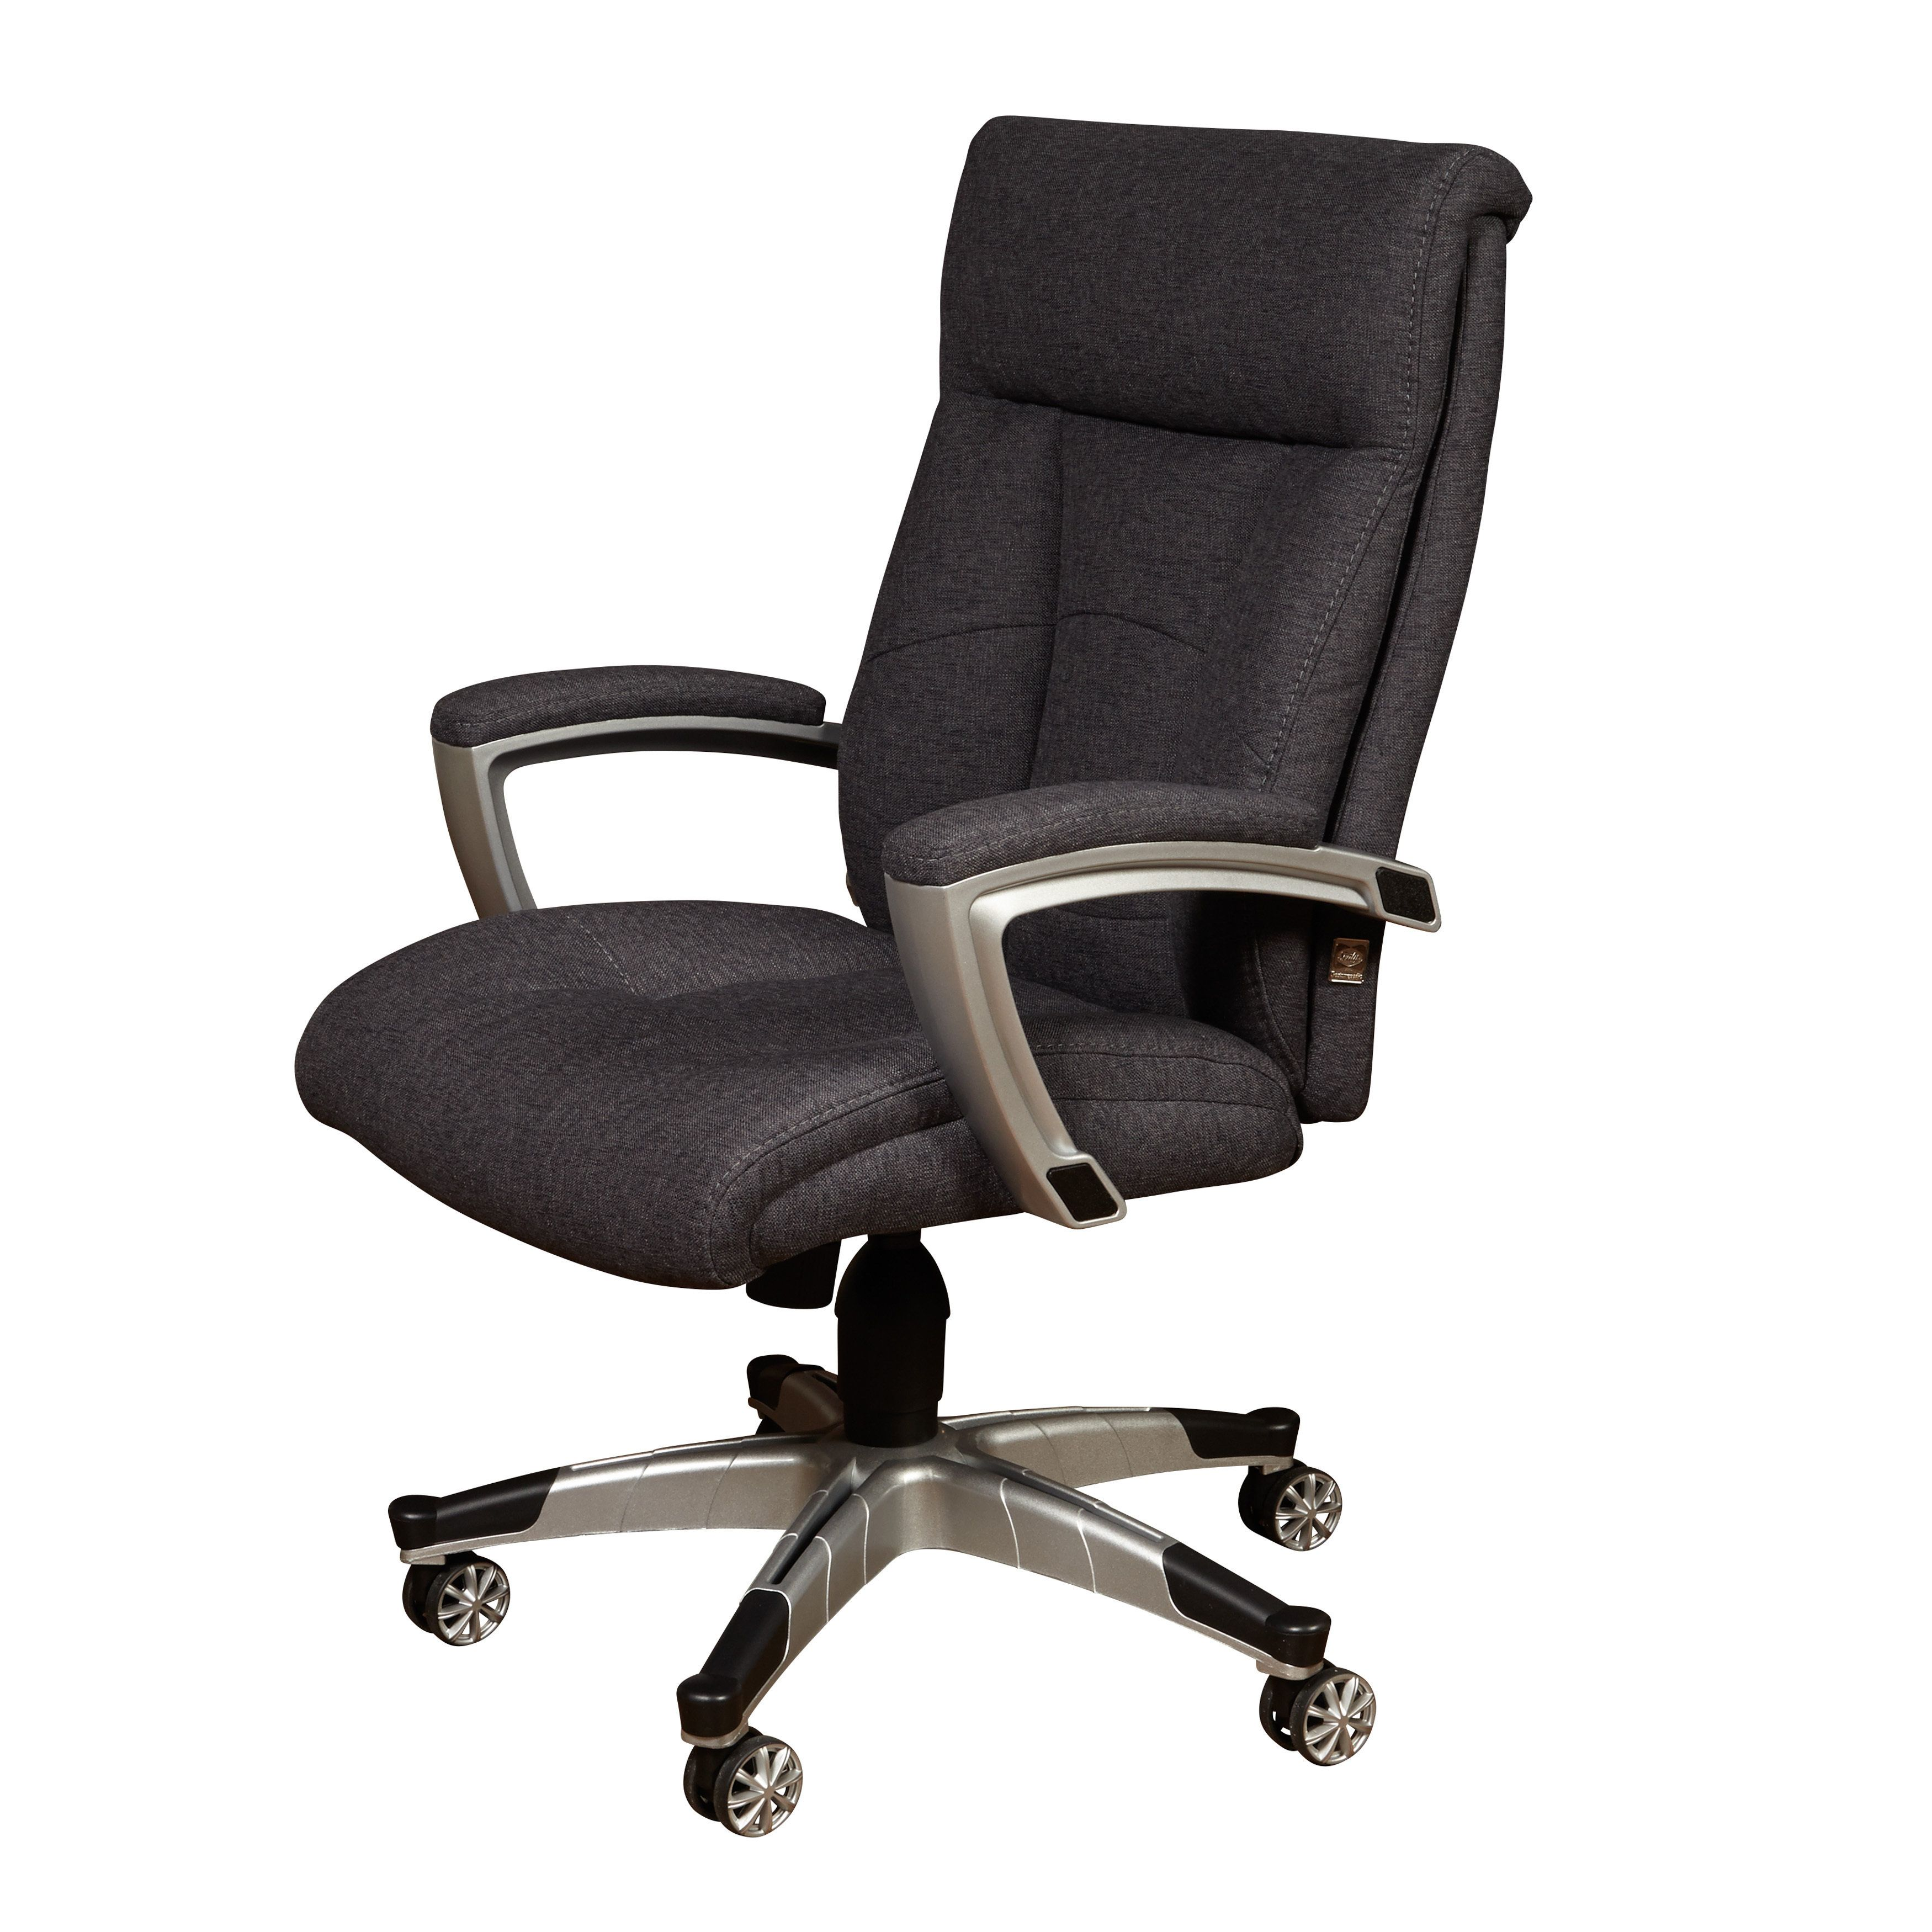 cooling office chair. Sealy Posturepedic Cooling Memory Foam Executive Office Chair